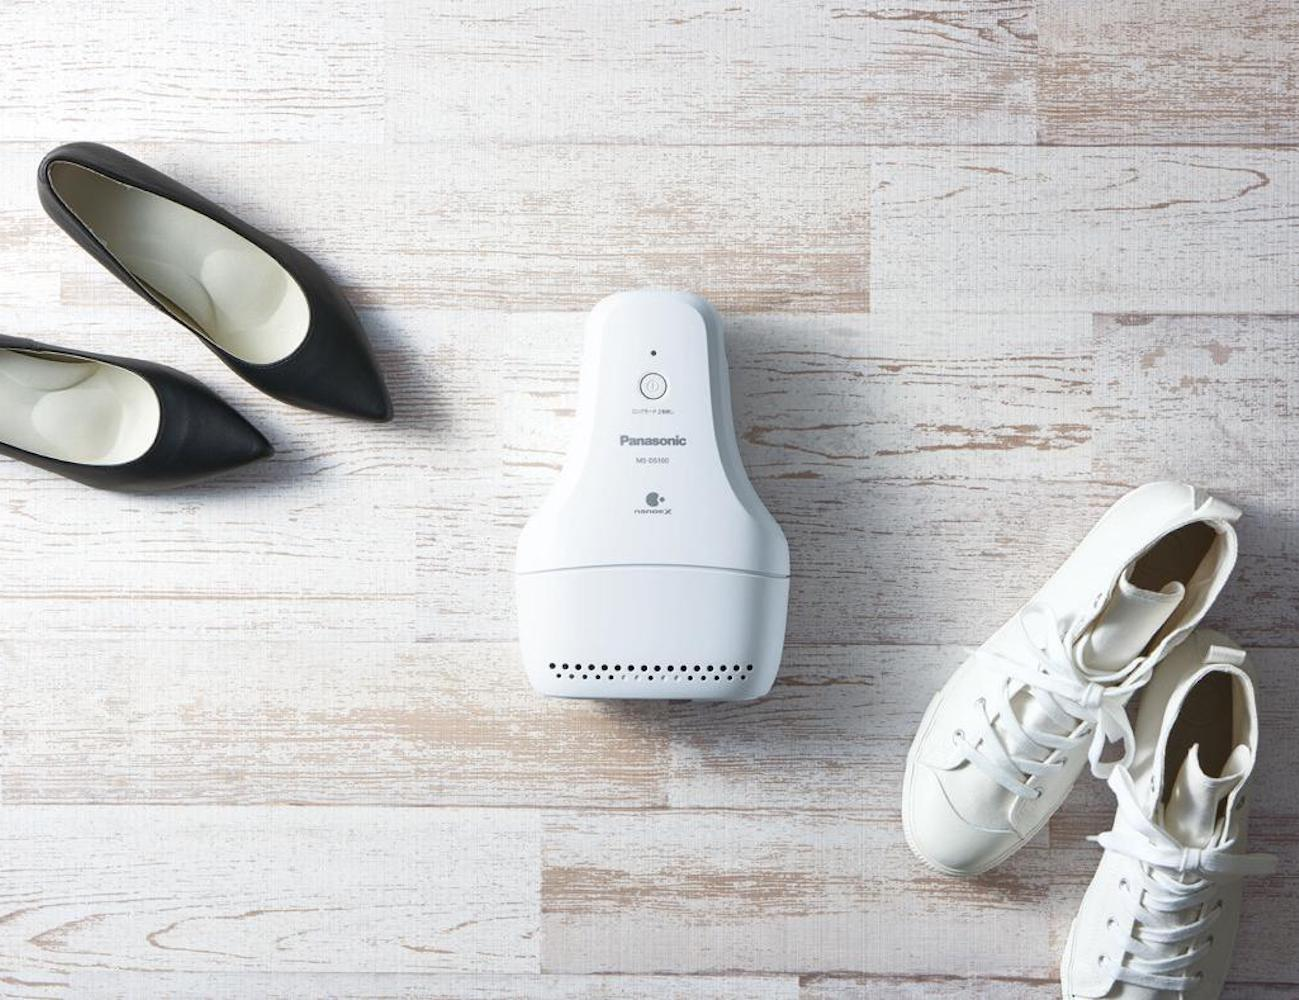 Panasonic MS-DS100 Electric Shoe Deodorizer